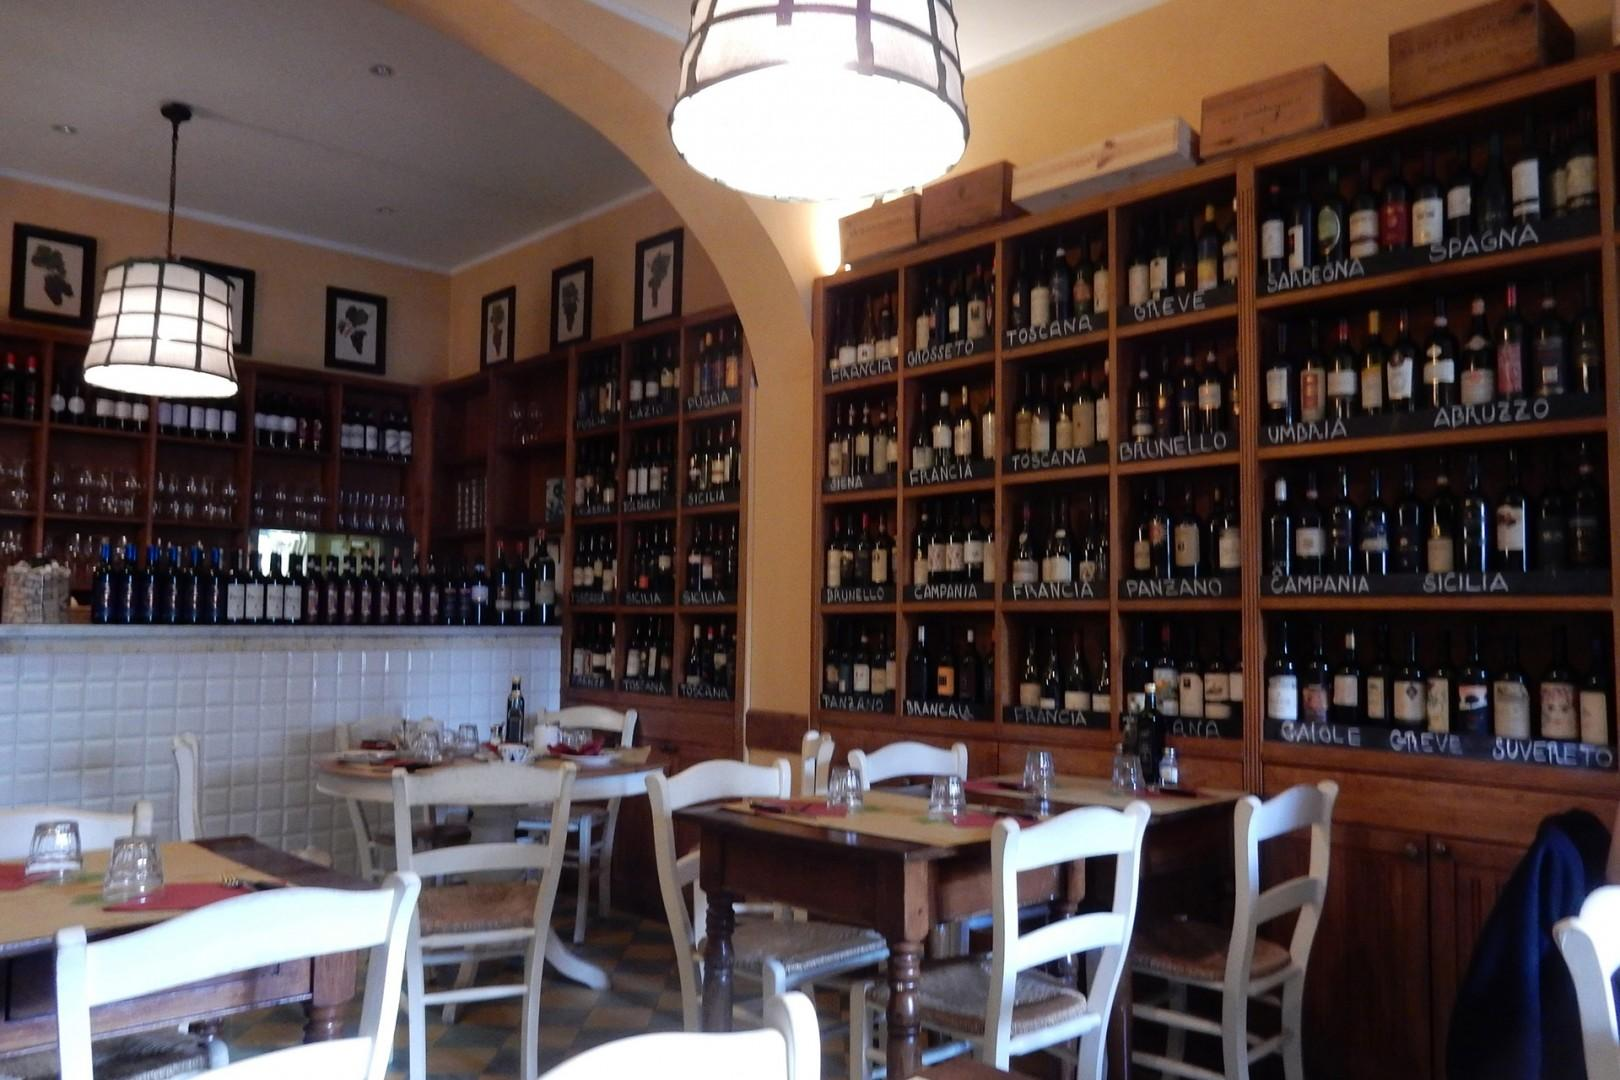 Nearby restaurant is known for fine wine selection and good regional menu.